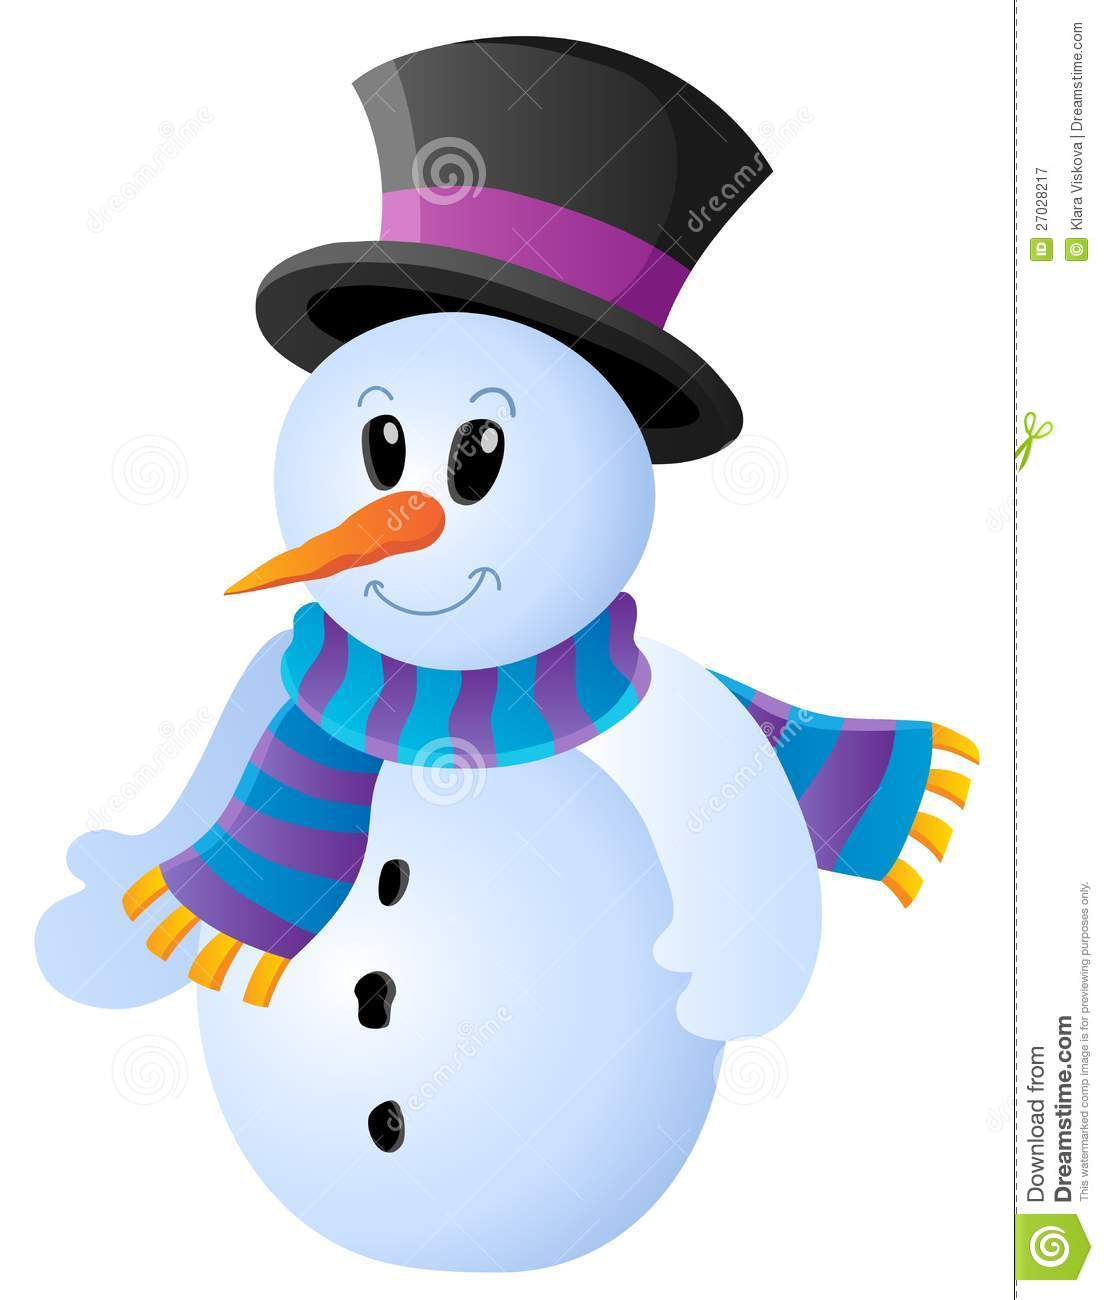 Winter Snowman Theme Image 1 Royalty Free Stock Photography - Image ...